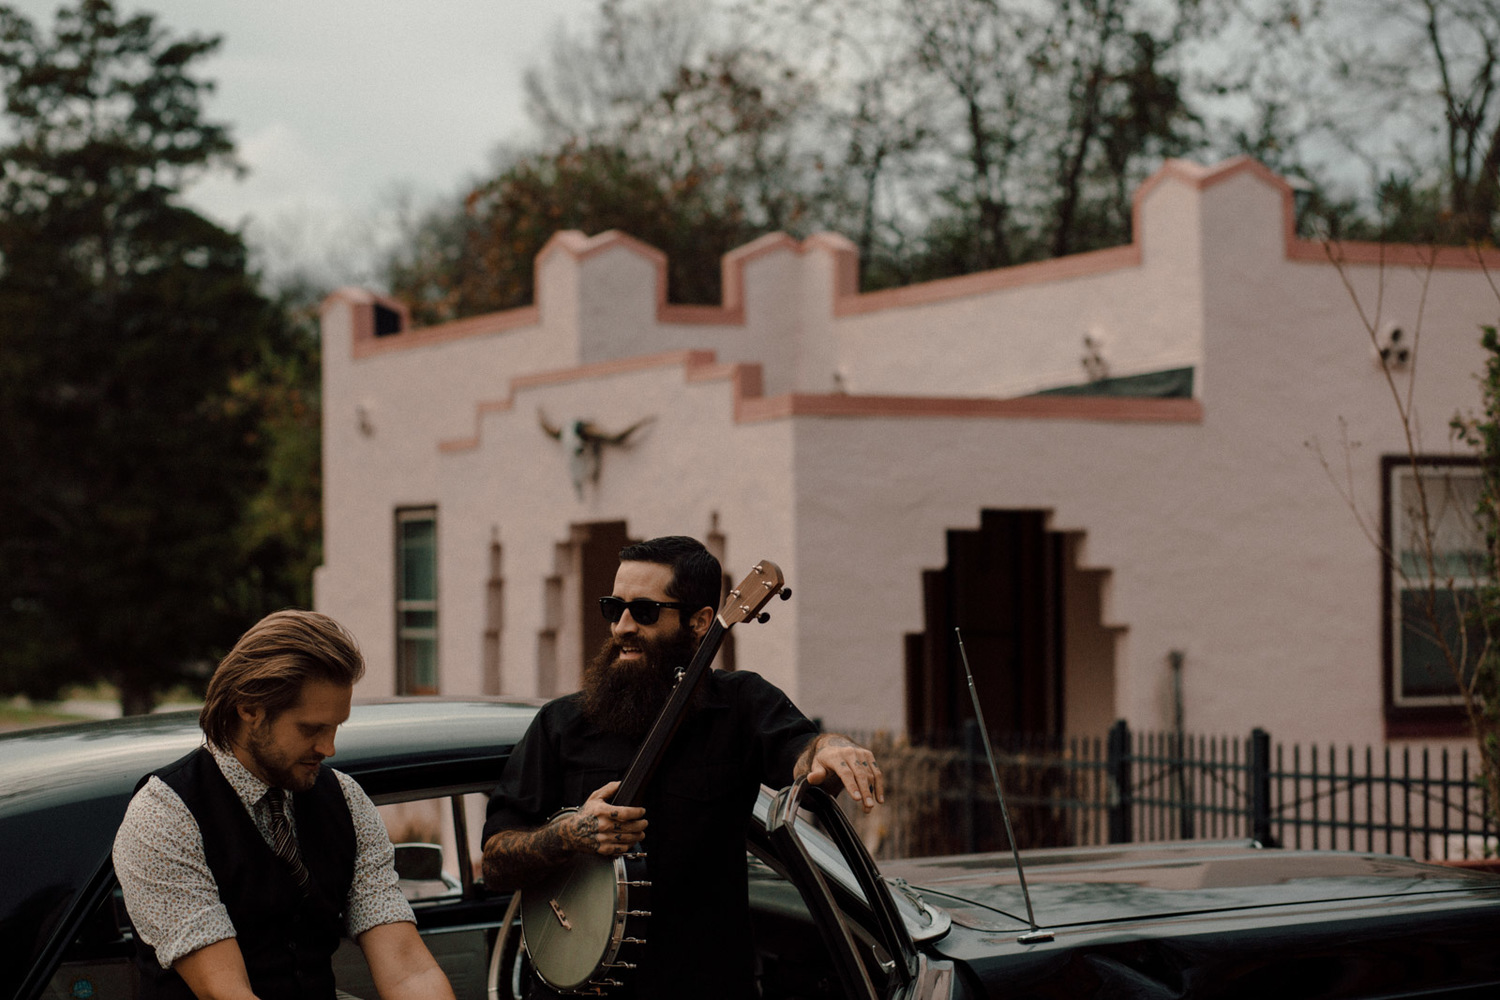 J.P. Harris & Chance McCoy (Old Crow Medicine Show) tour Europe this winter